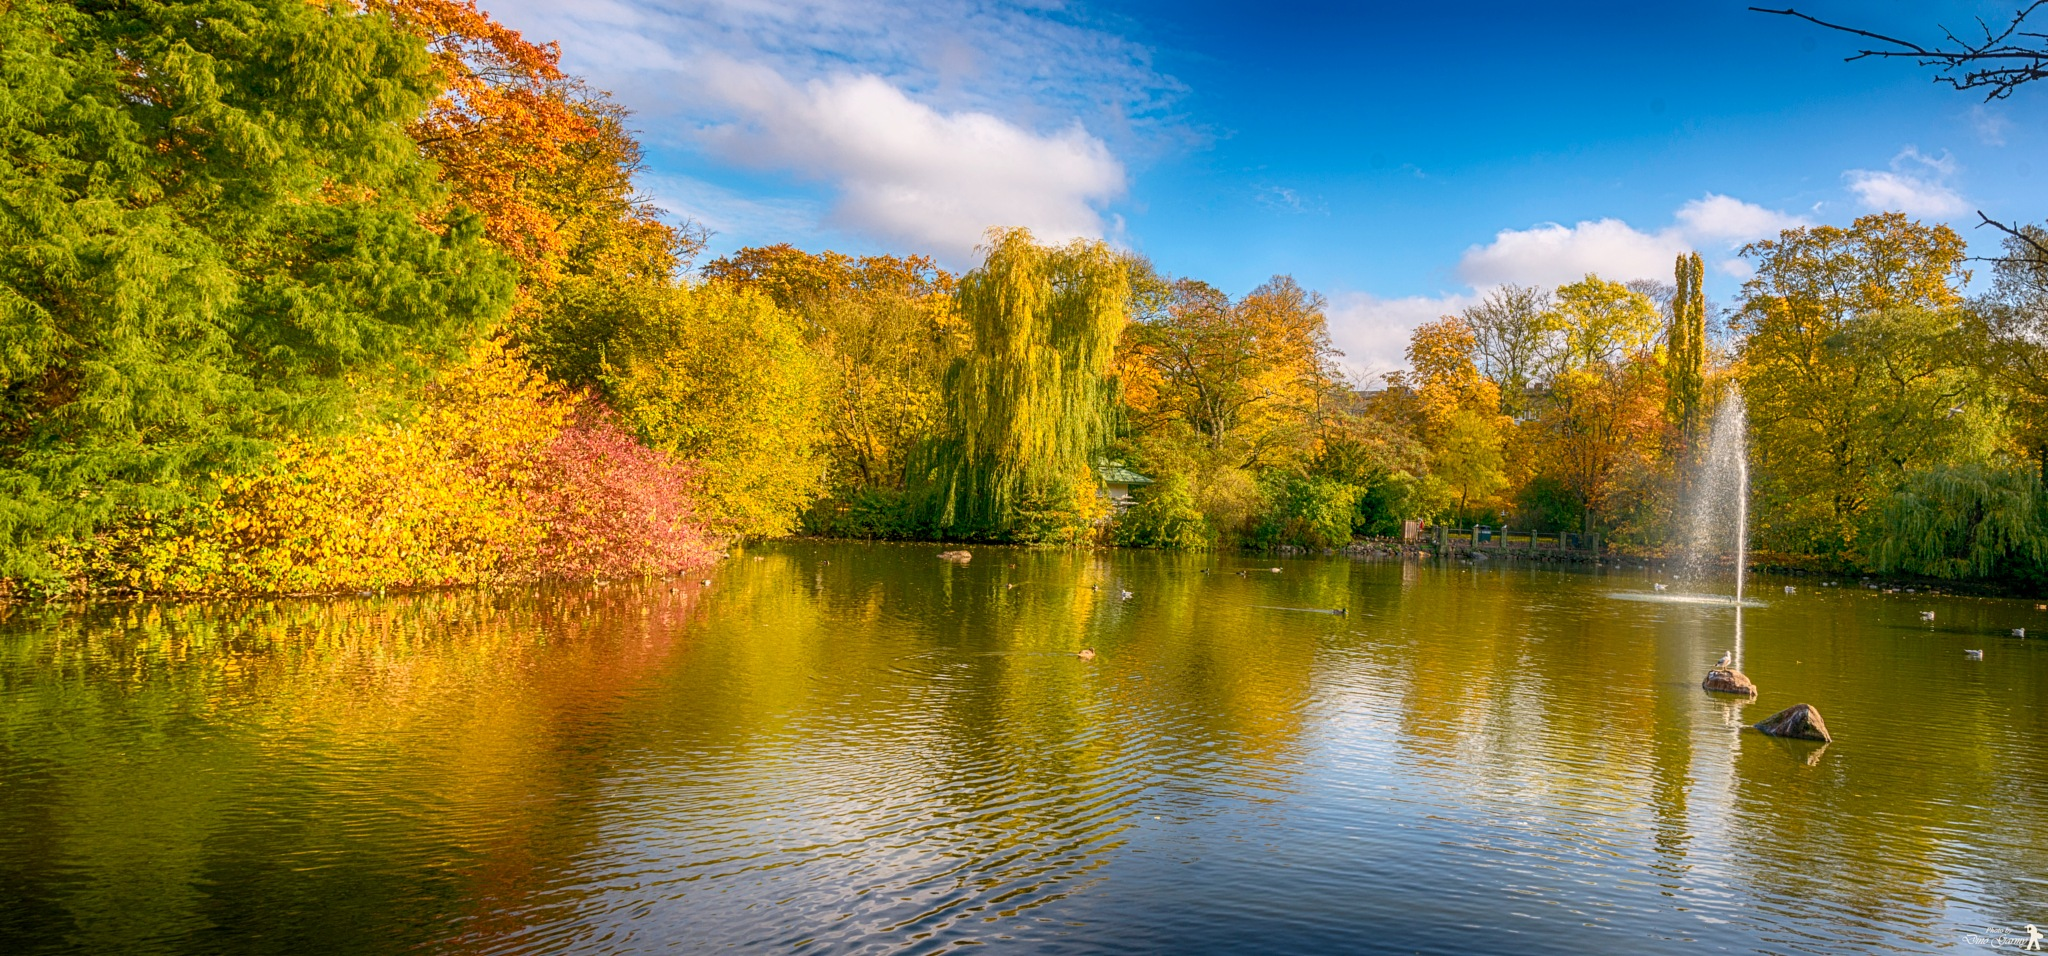 Autumn in the park! by Dino